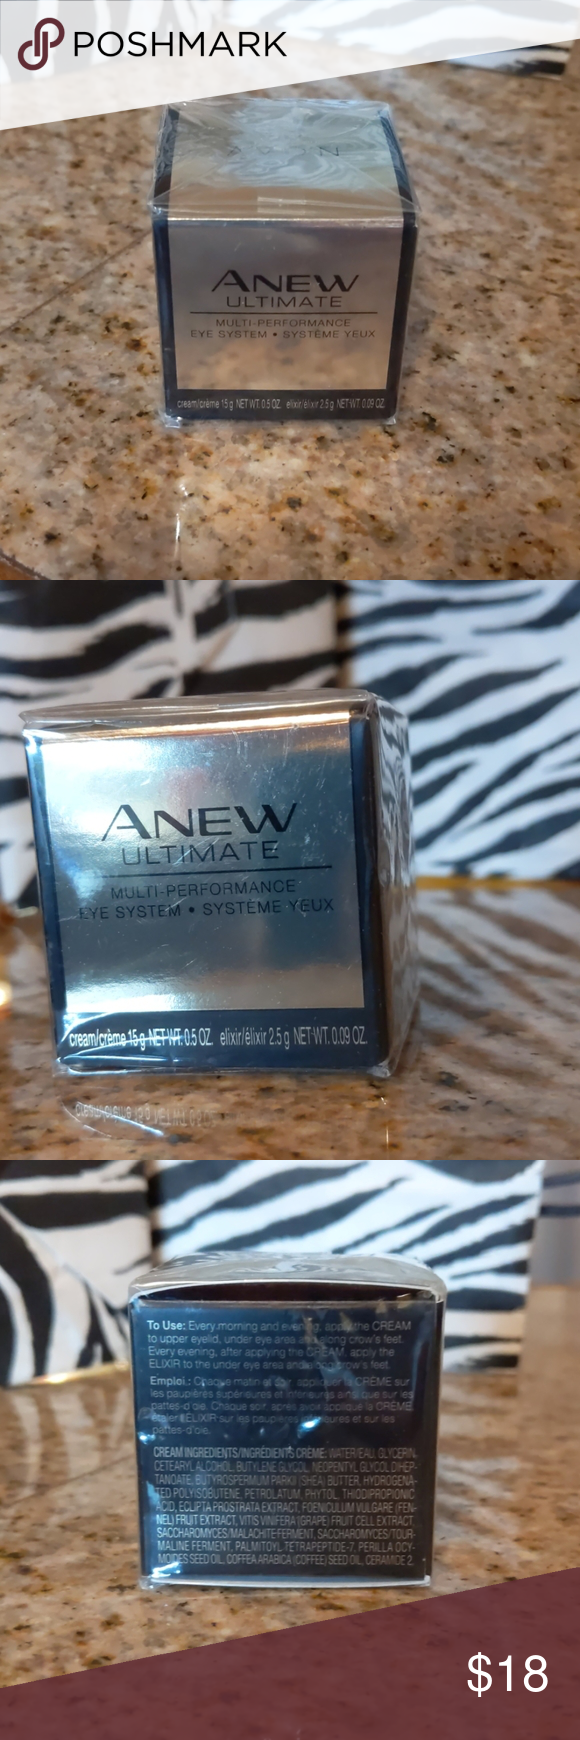 Anew Ultimate Cream by Avon Boutique Anew ultimate, Avon